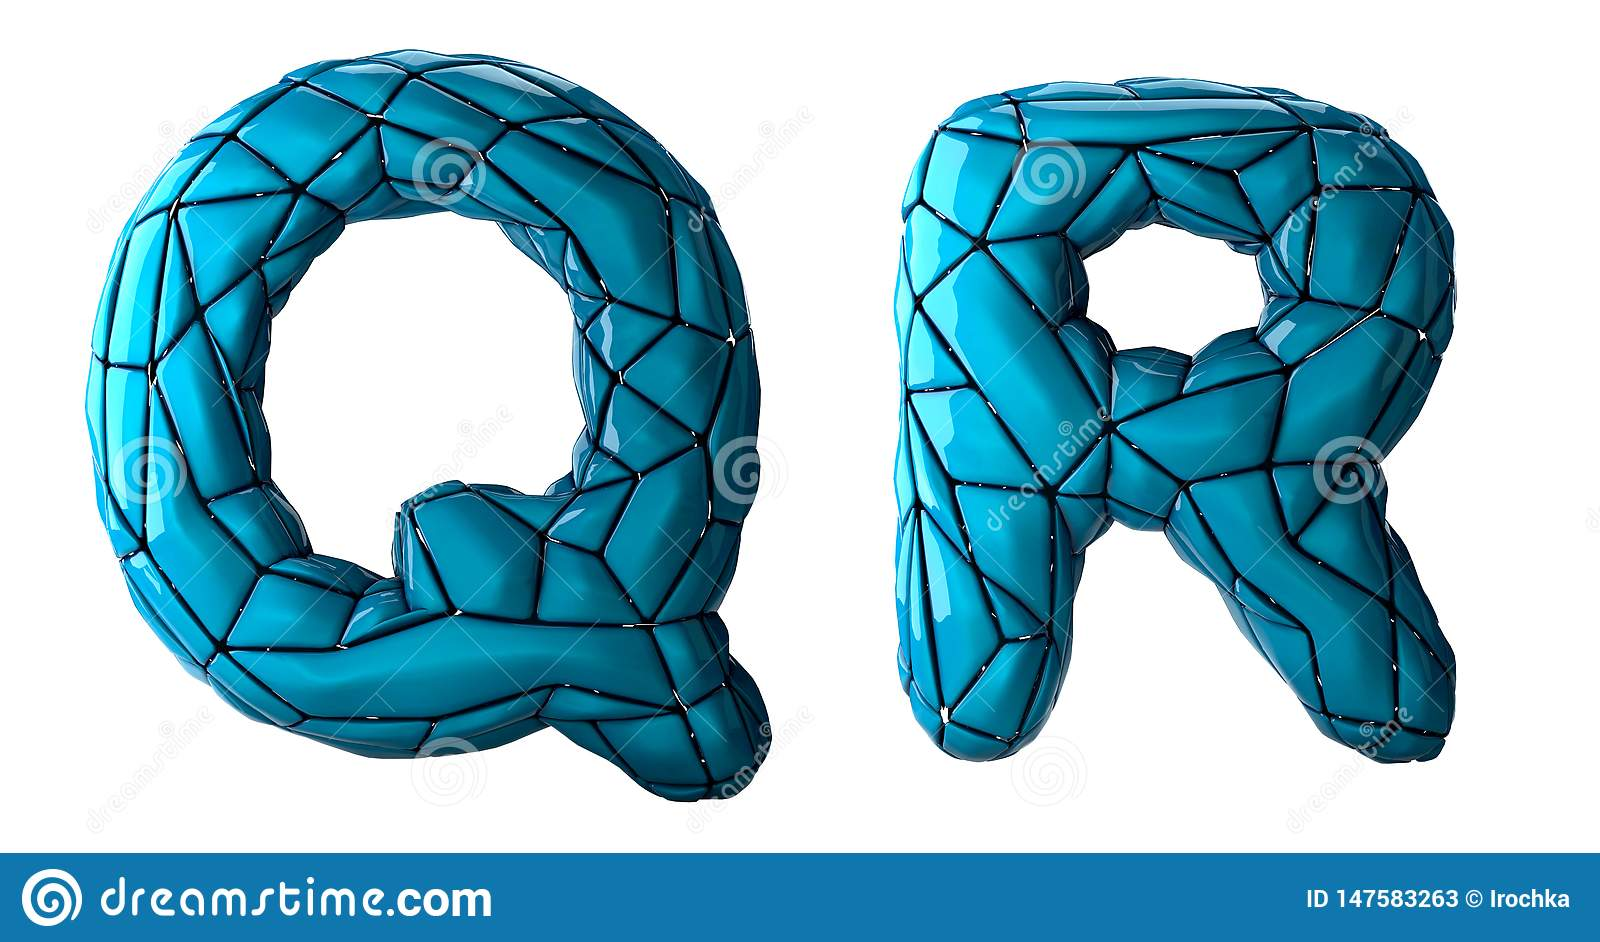 Realistic 3D letters set Q, R made of low poly style. Collection symbols of low poly style blue color plastic isolated